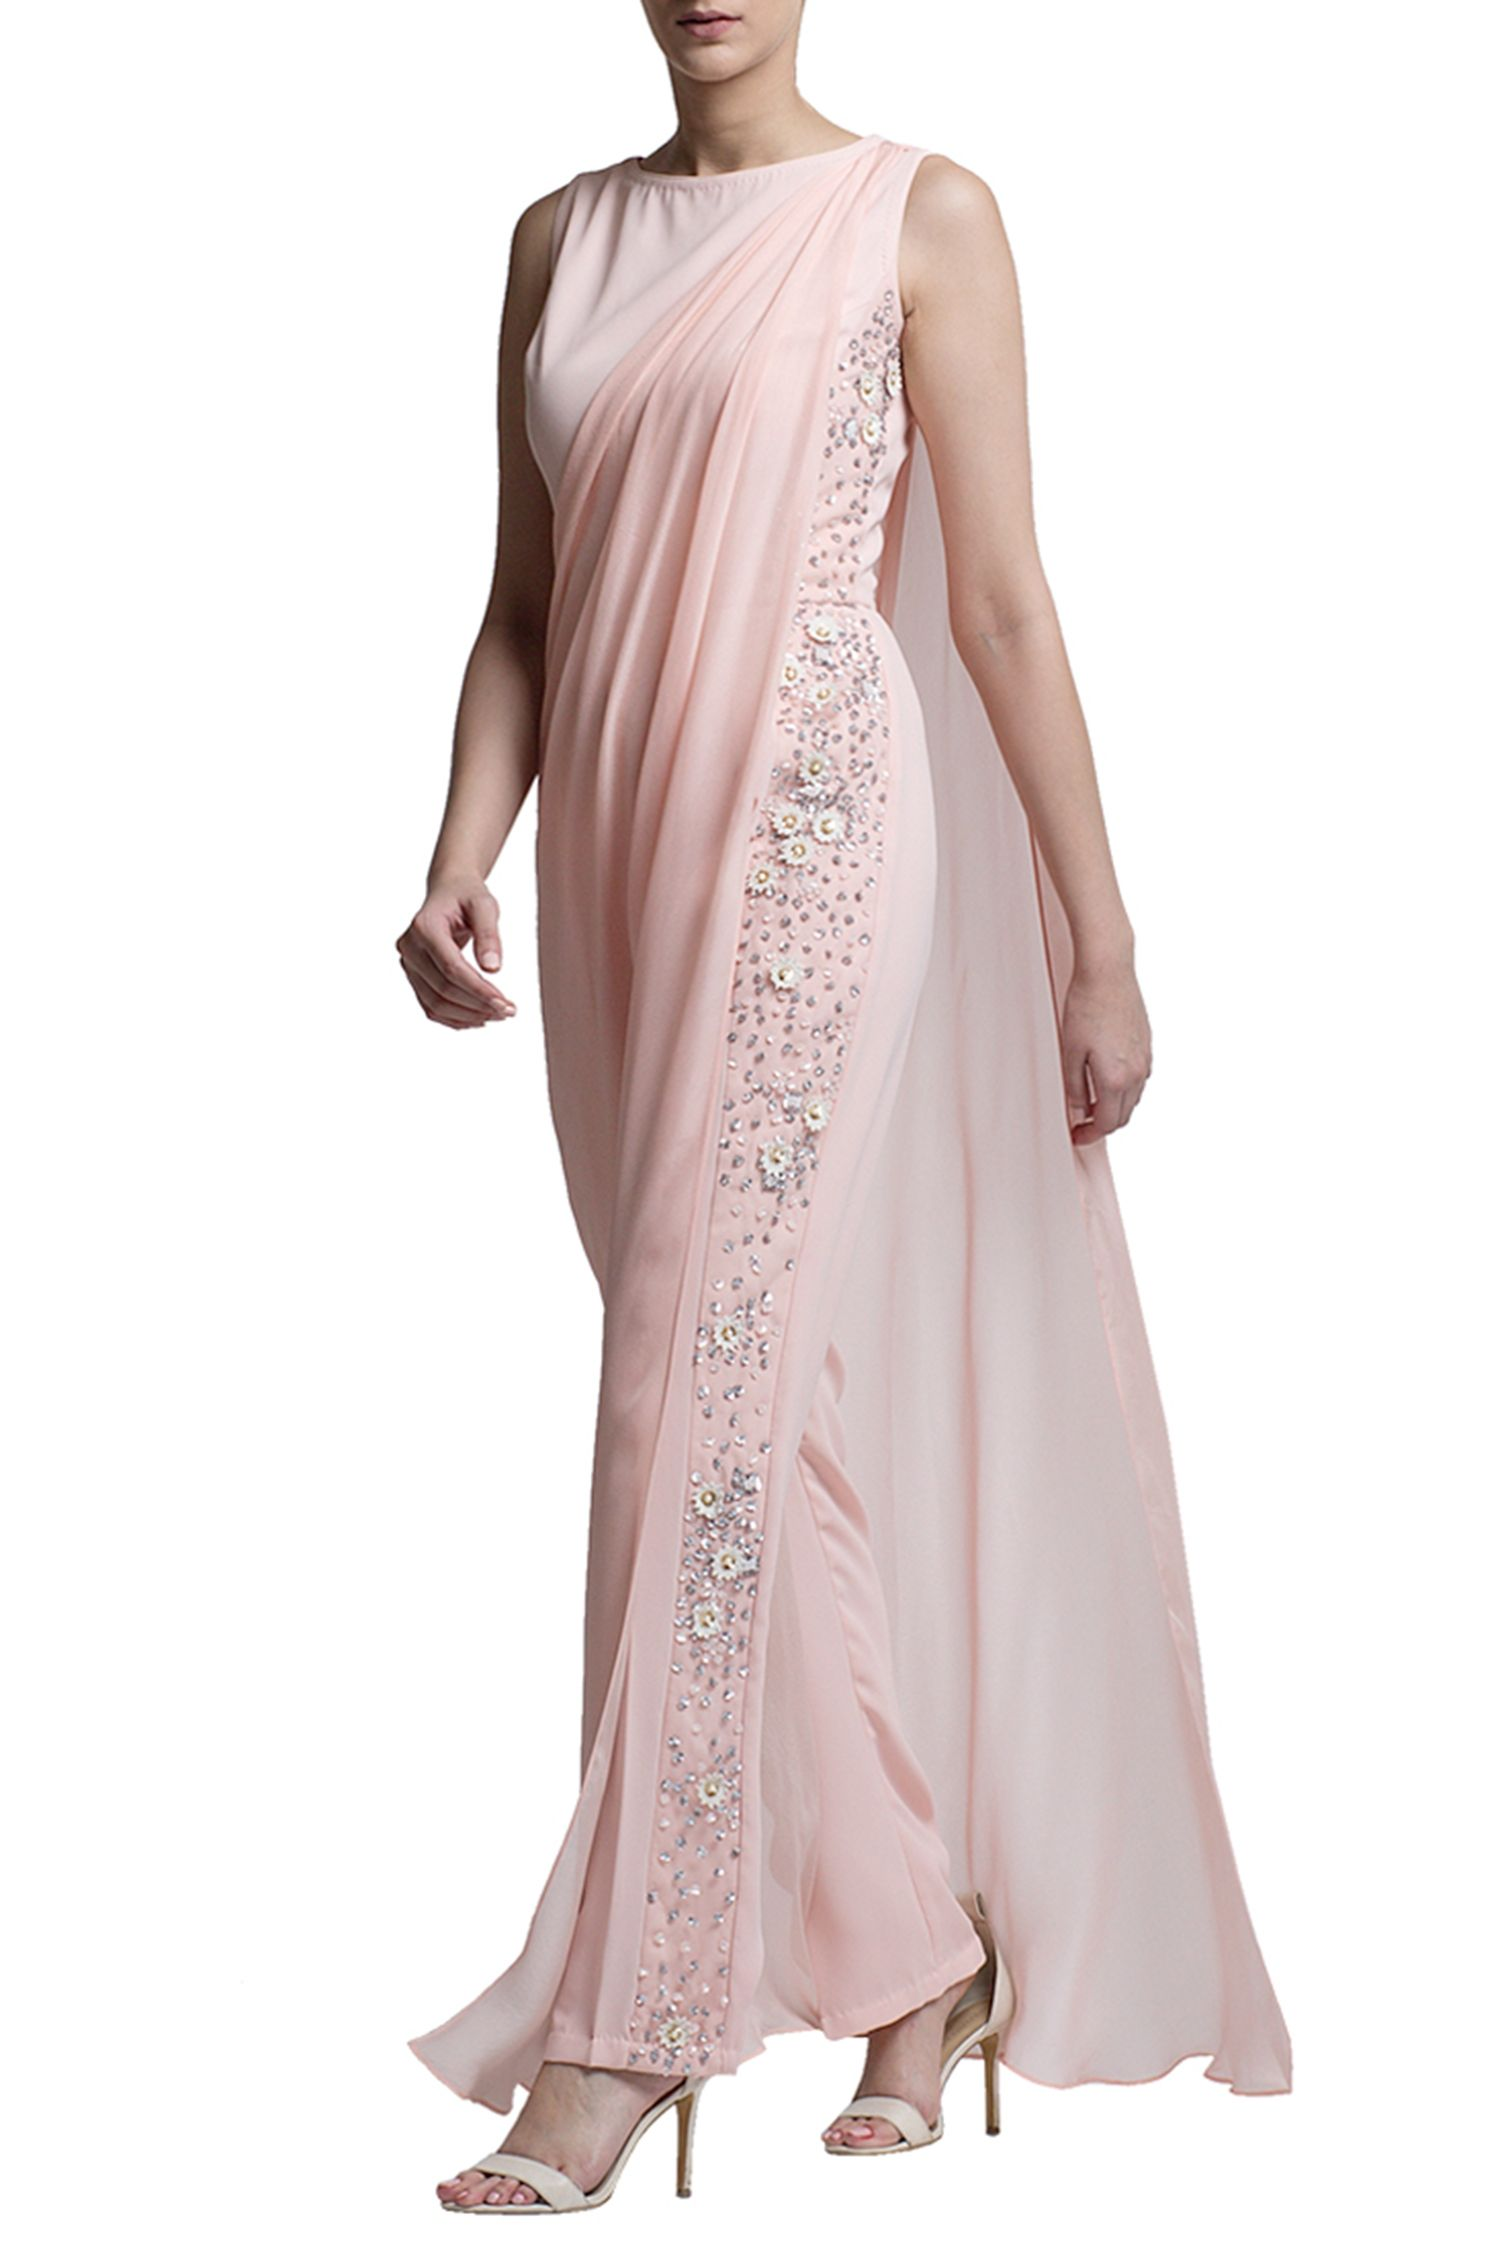 dad7fccdee11 Shop Bhaavya Bhatnagar - Blush pink drape jumpsuit Latest Collection  Available at Aza Fashions